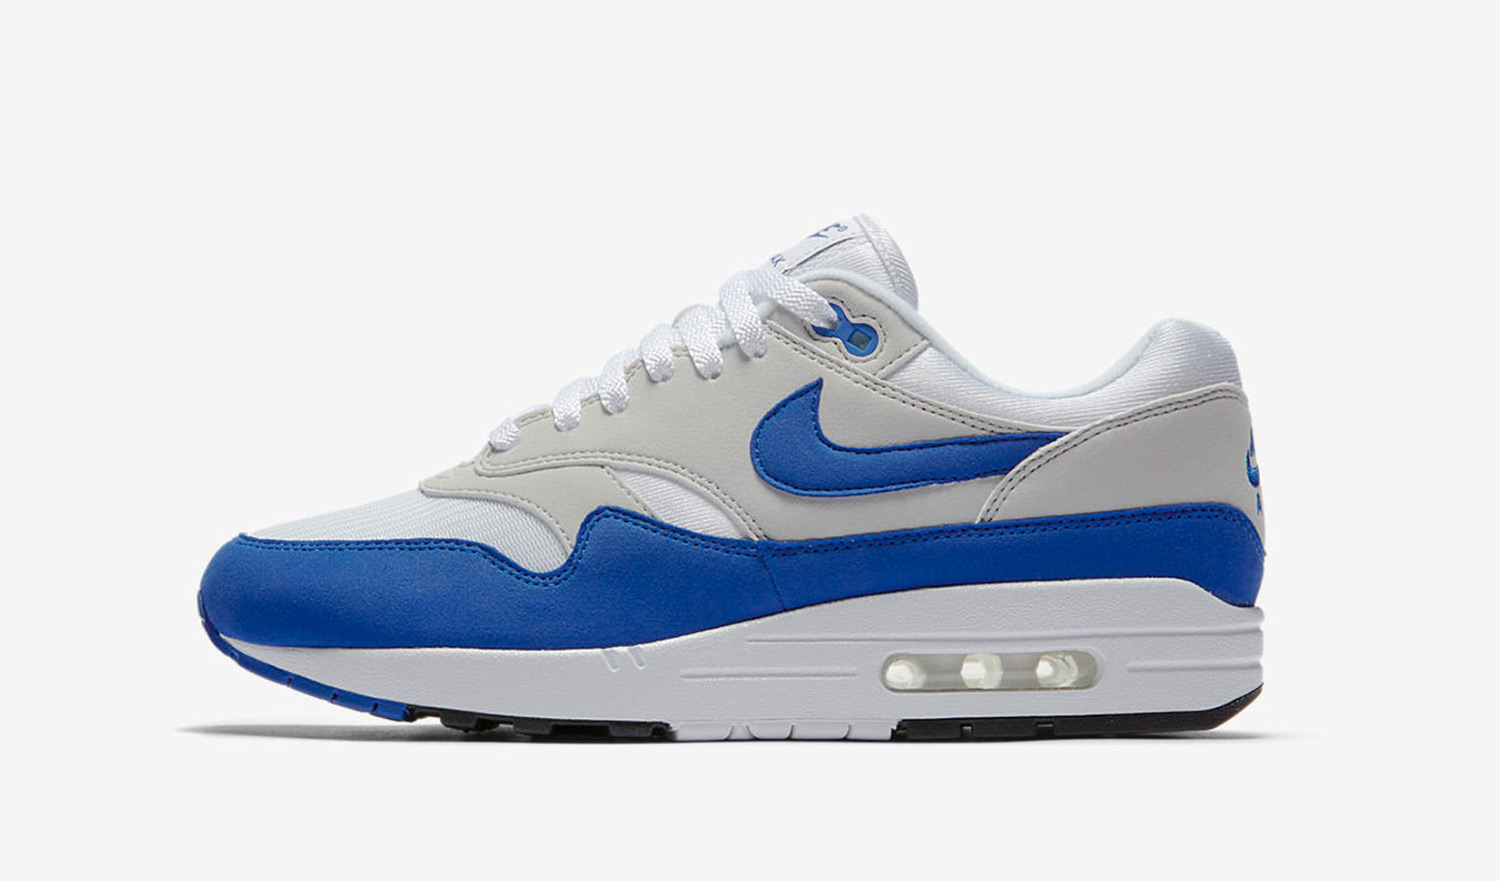 eabe615766 The Nike Air Max 1 OG Returns for Its 30th Anniversary — CNK Daily ...